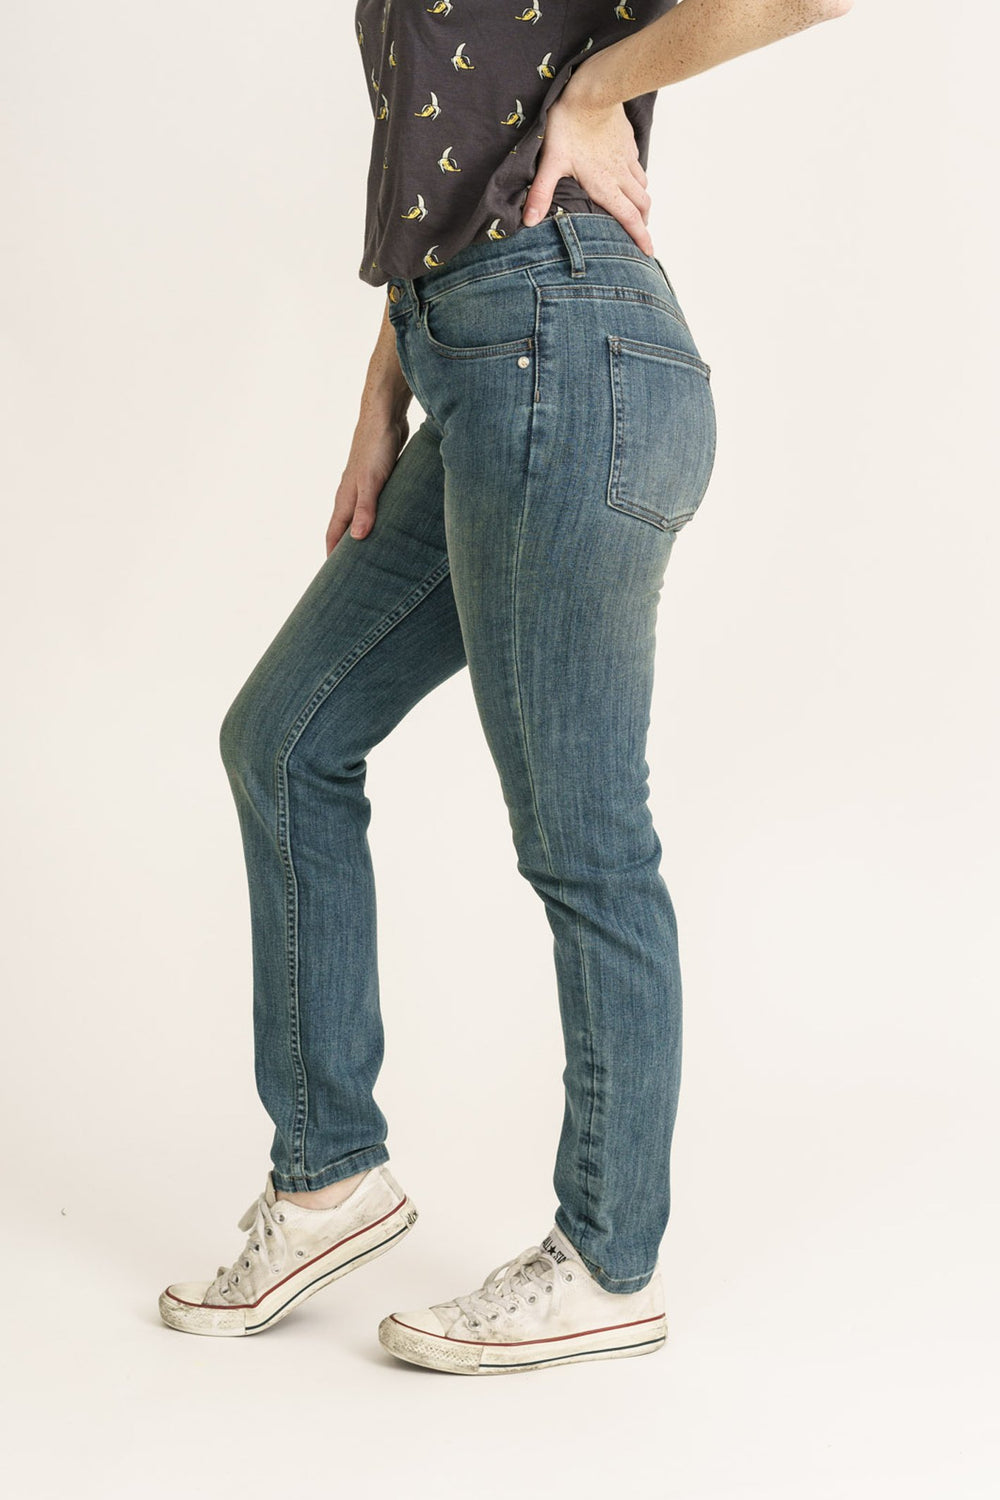 womens classic skinny organic denim mid blue wash monkee genes jeans